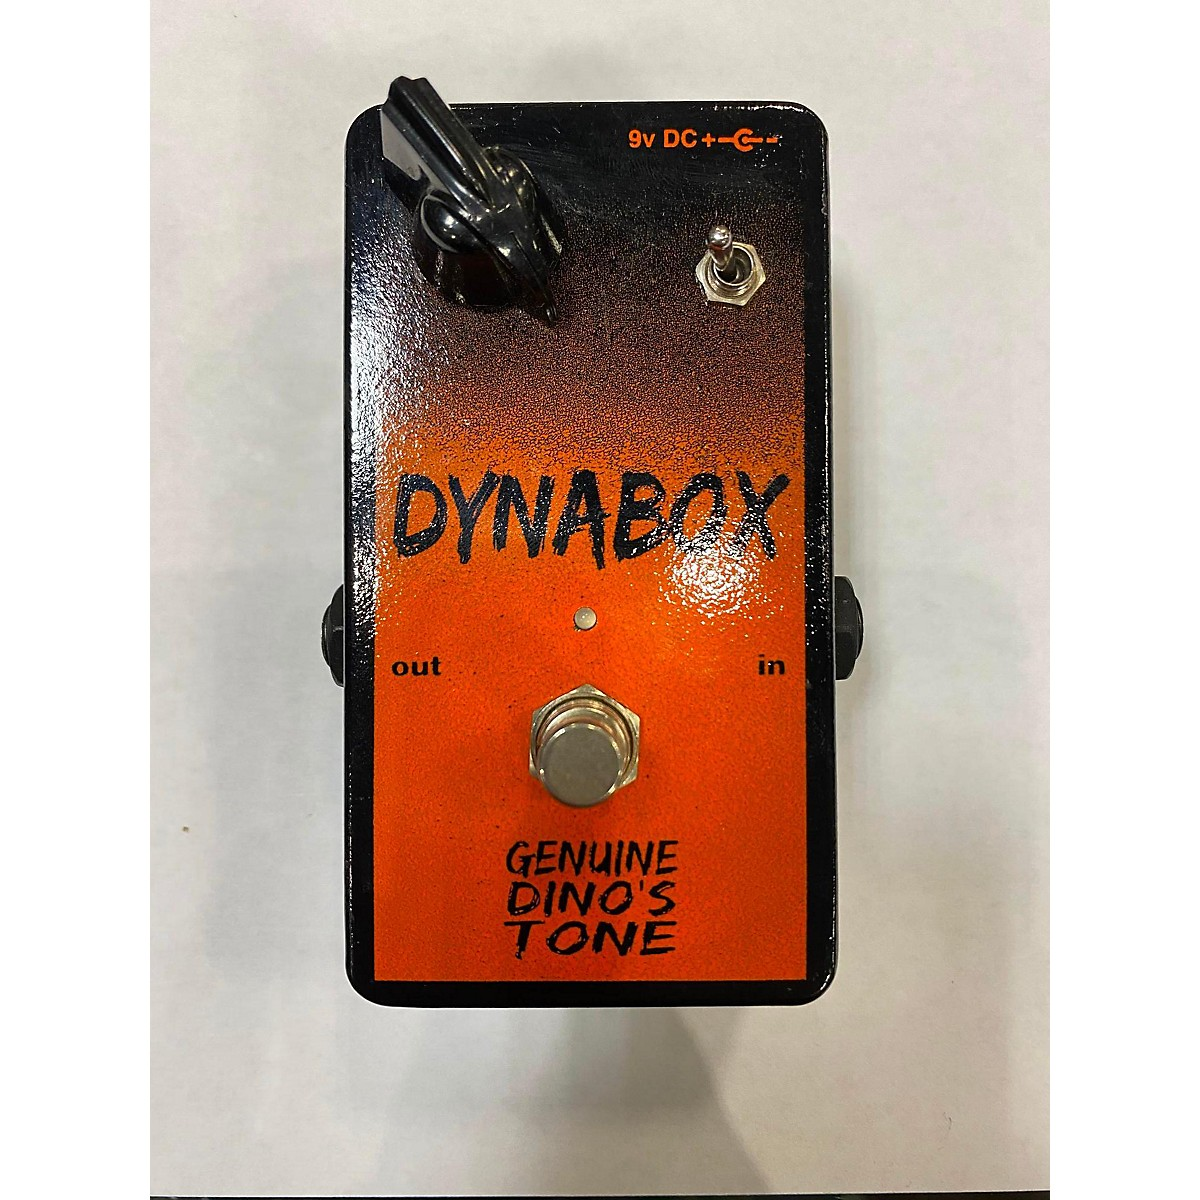 In Store Used Used GENUINE DINO'S TONE DYNABOX Effect Pedal